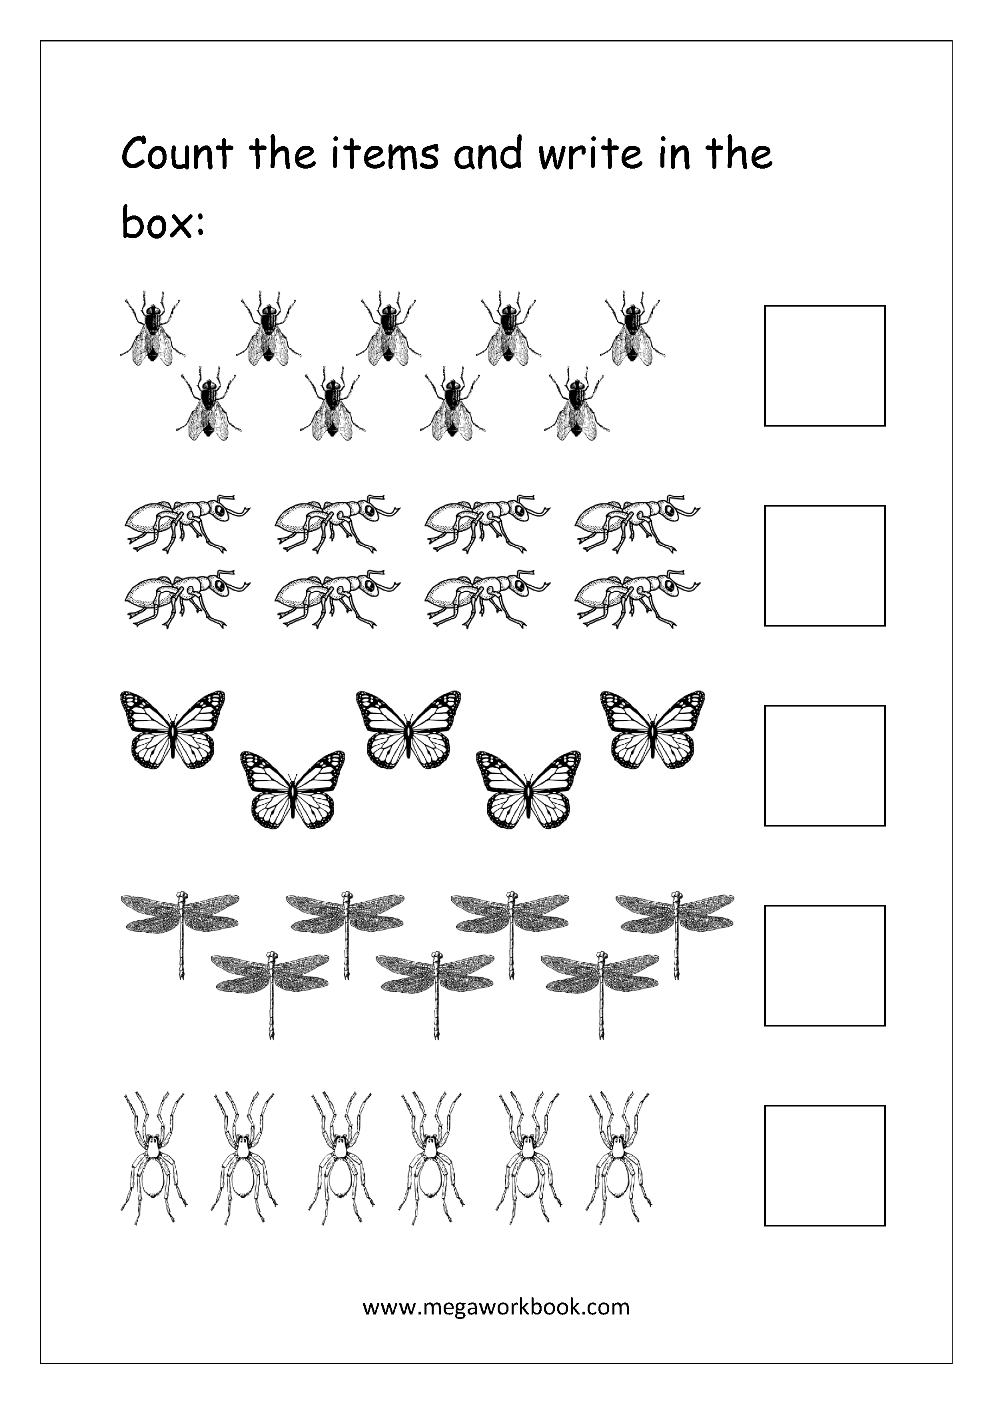 image relating to Printable Counting Worksheets identified as Totally free Printable Amount Counting Worksheets - Depend and Video game